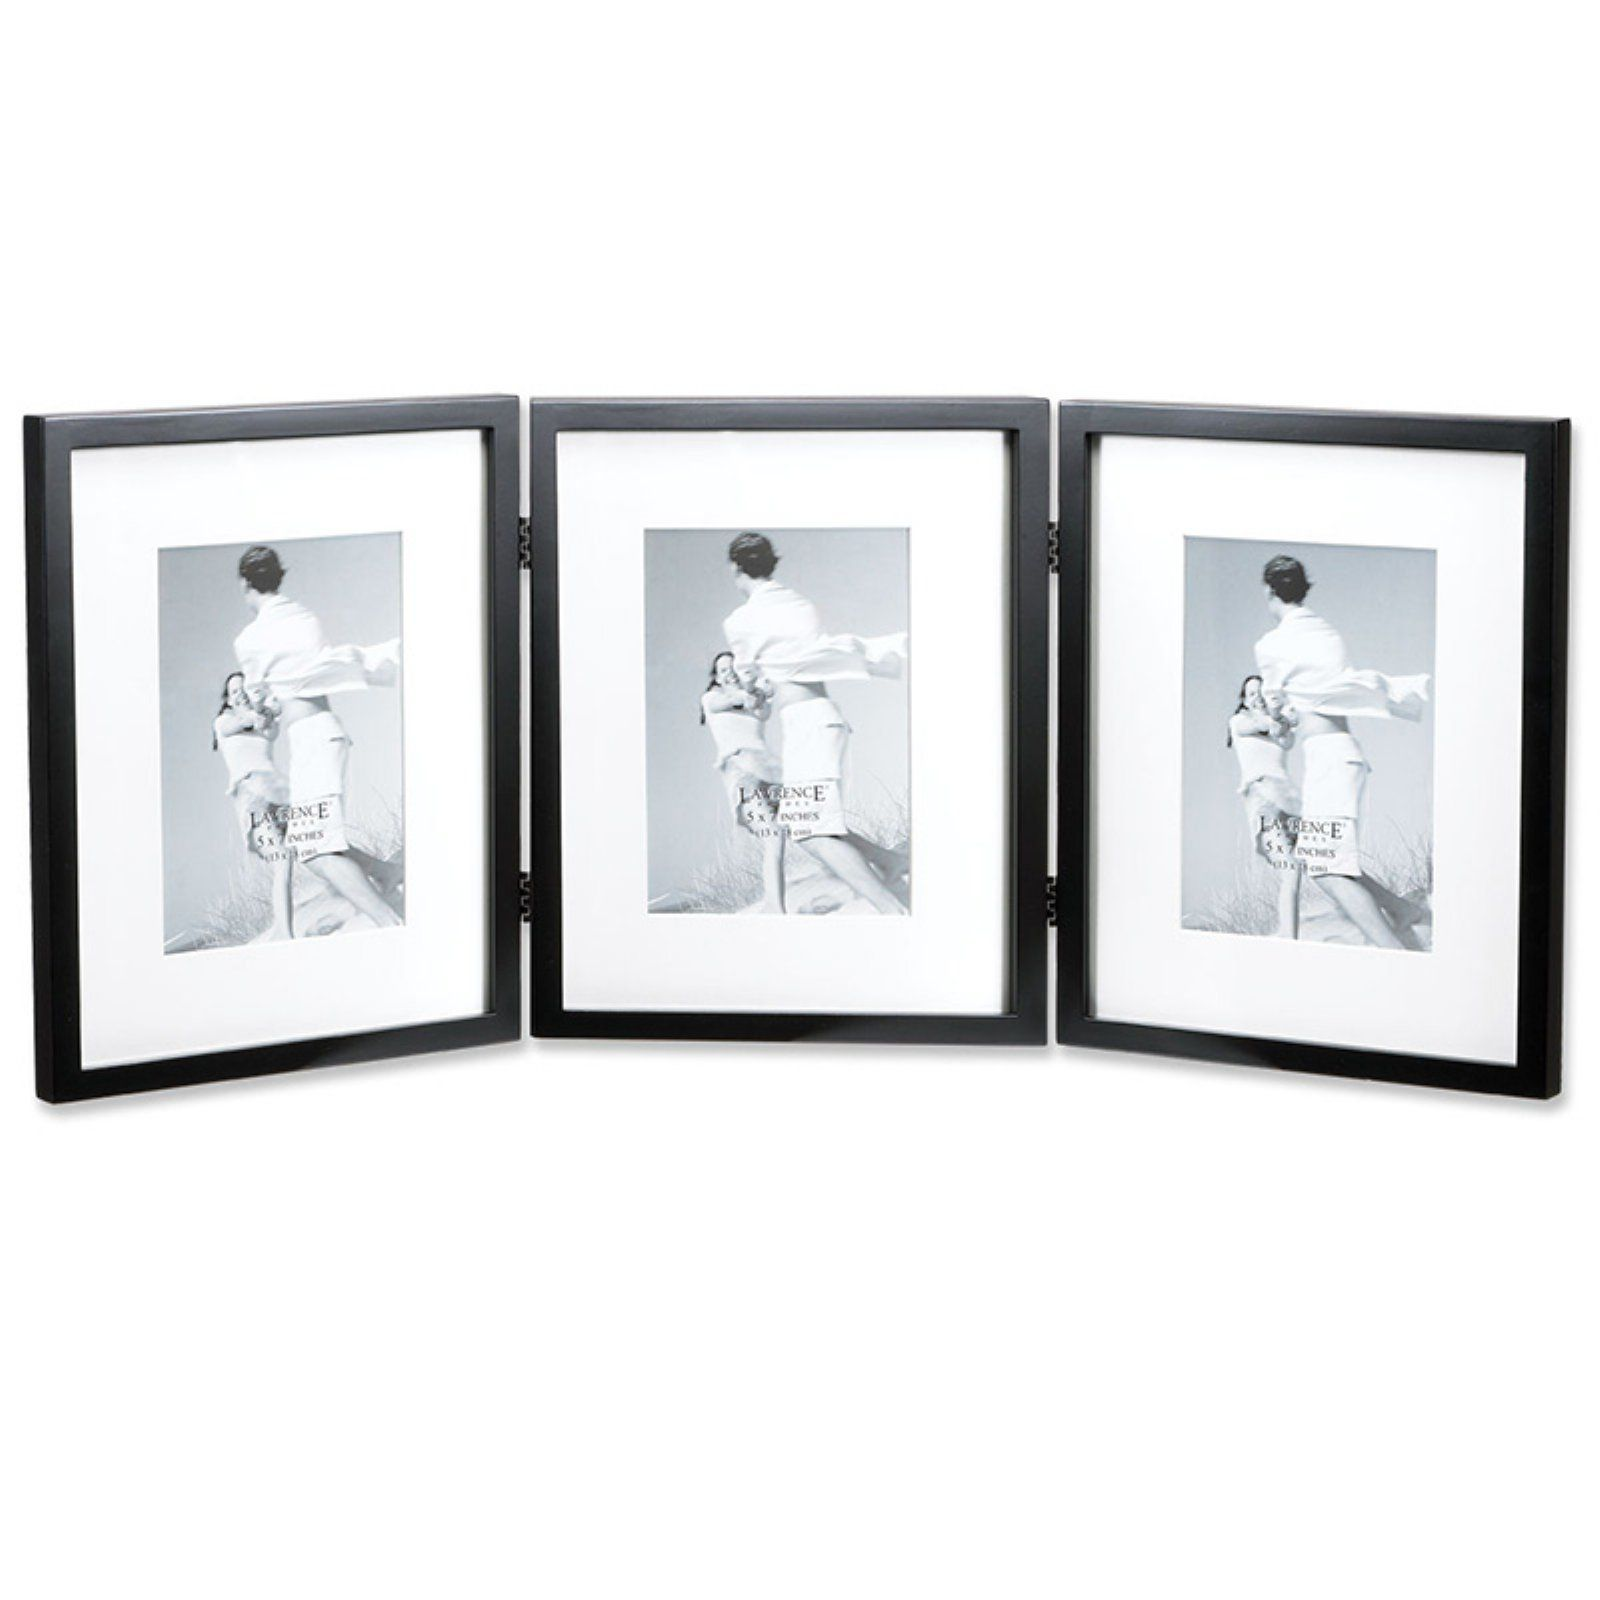 03c1ccbb0bfd6570a136b745e2718f8b - Better Homes And Gardens 8x10 Matted Beveled Black Picture Frame